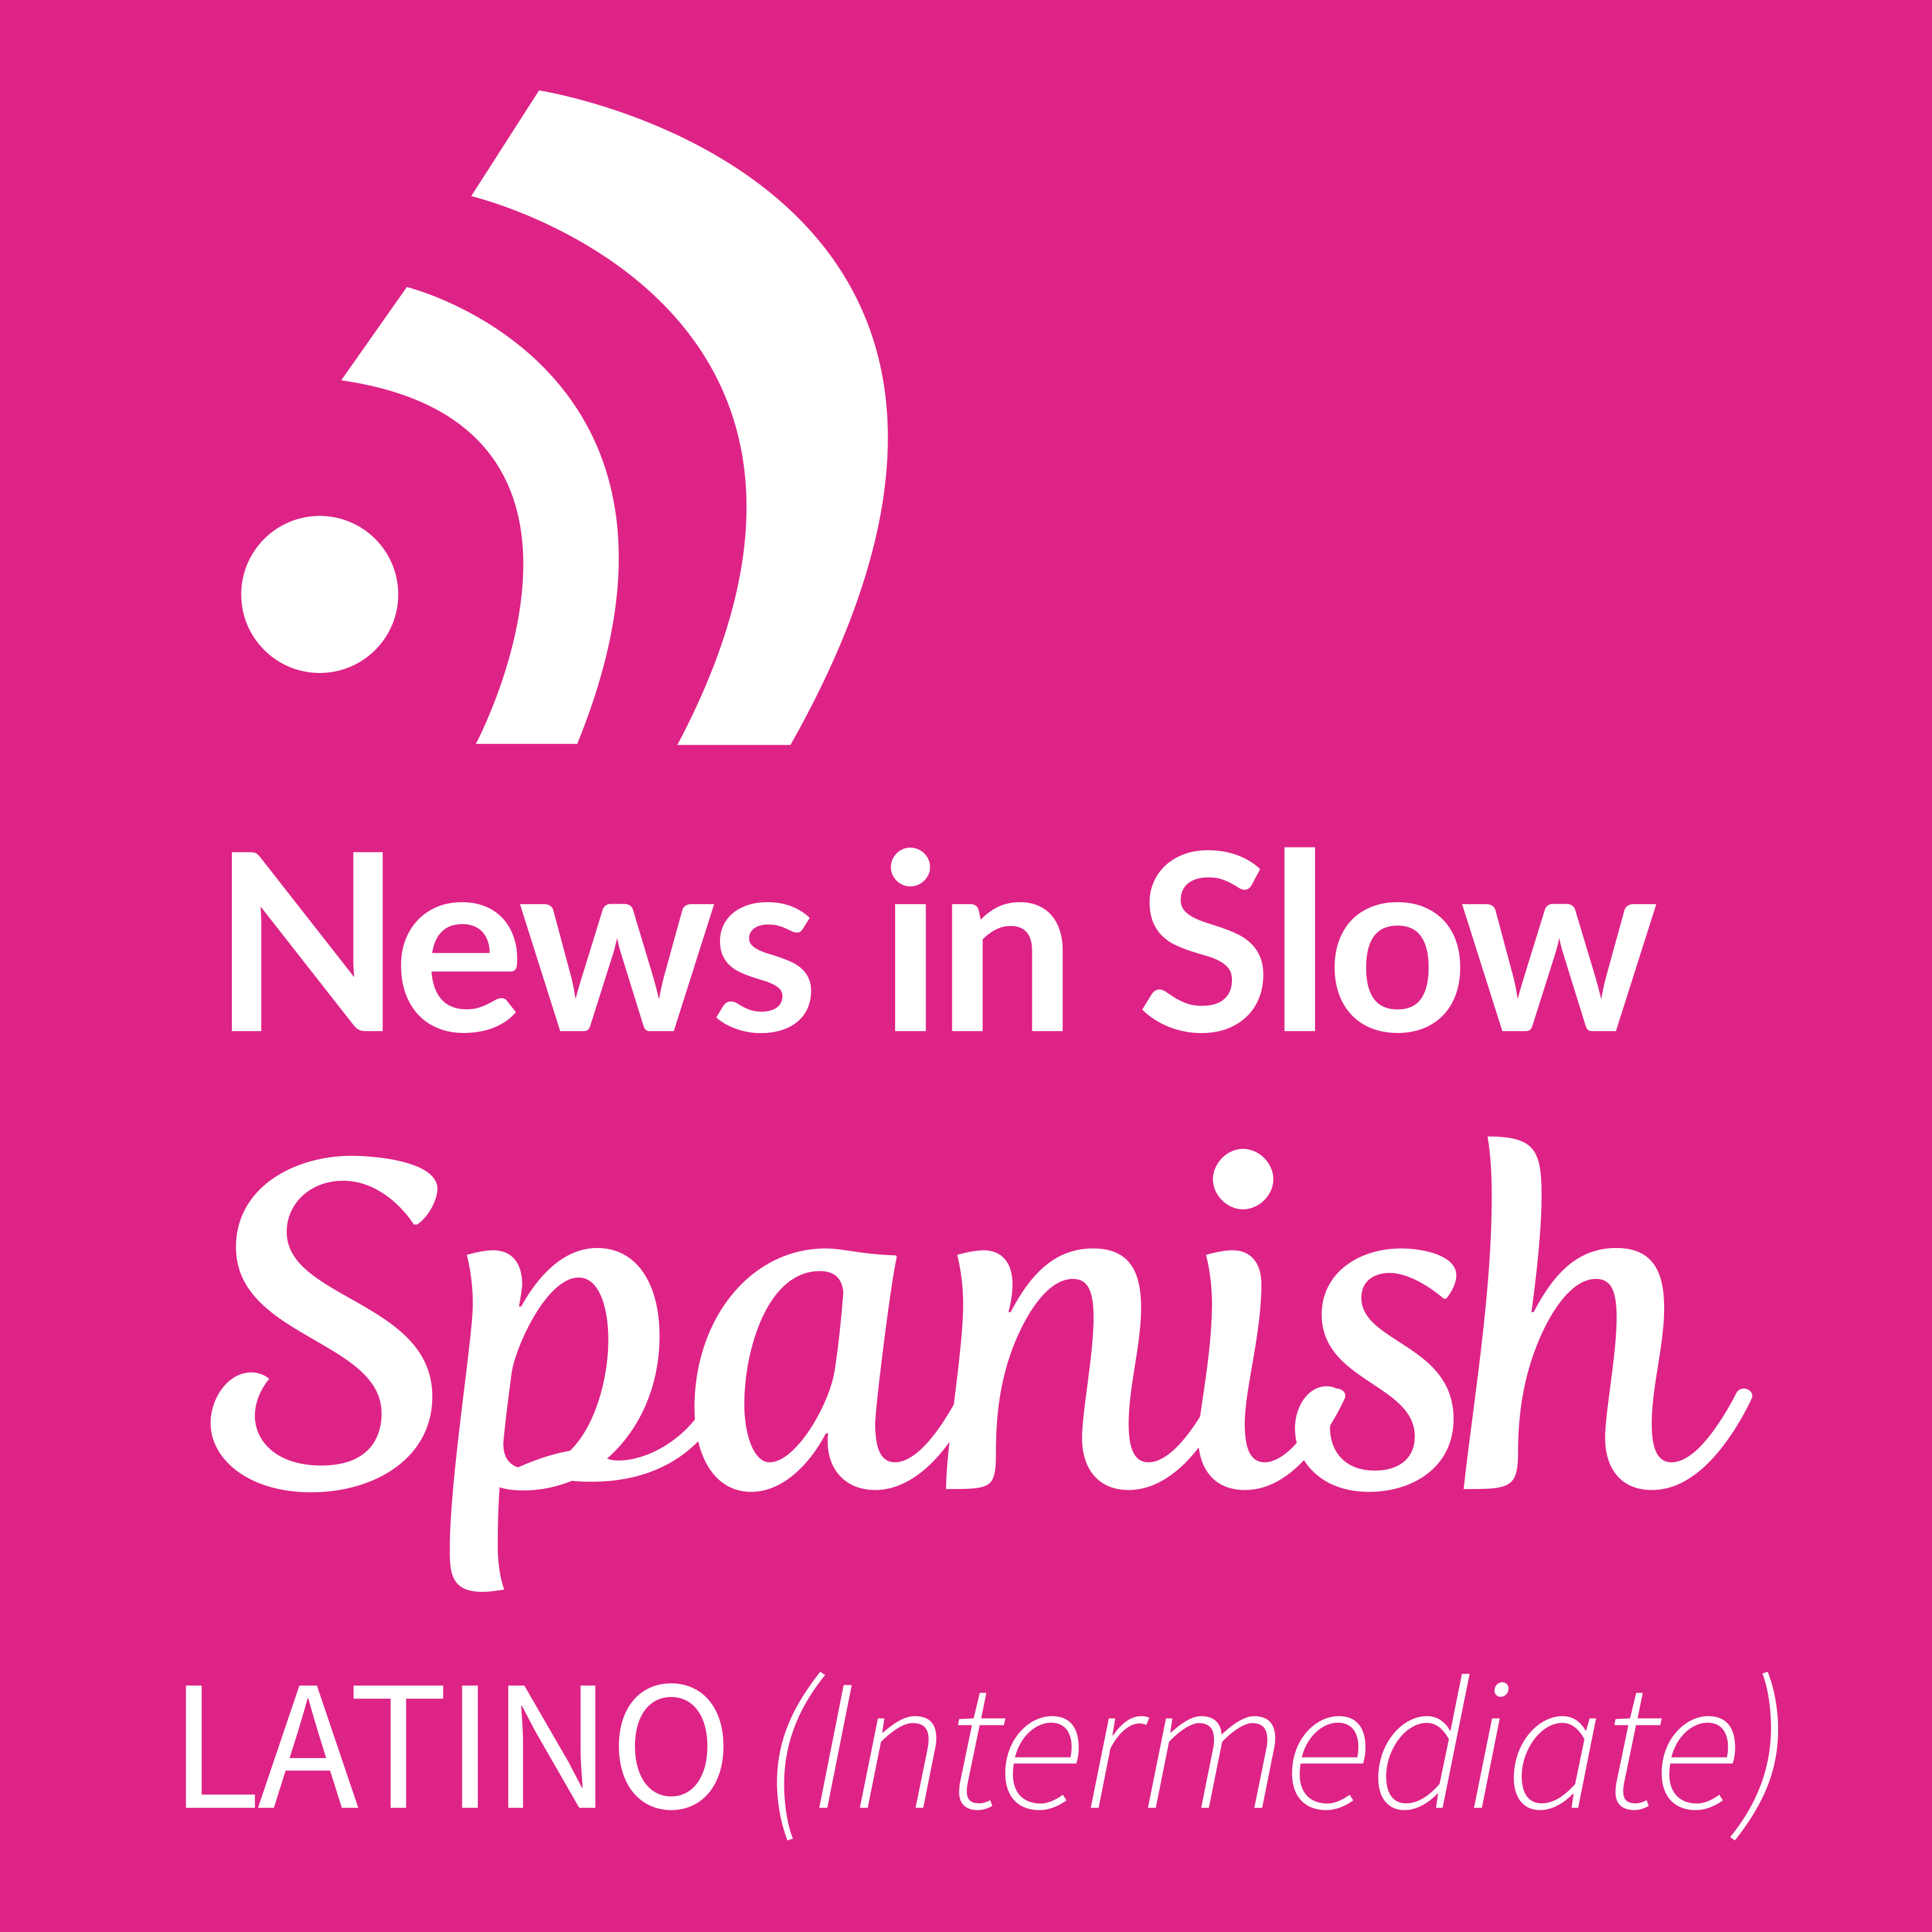 News in Slow Spanish Latino - # 190 - Spanish news, grammar and idiomatic expressions